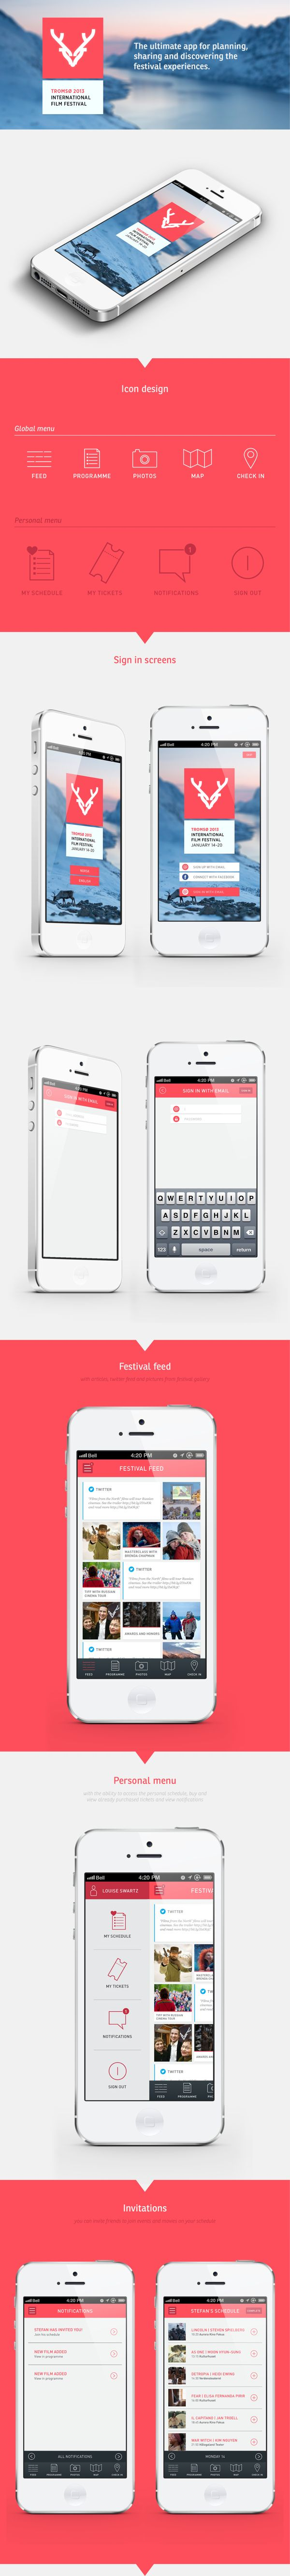 Festival app | Tromsø International Film Festival by Hanna Elise Haugerød